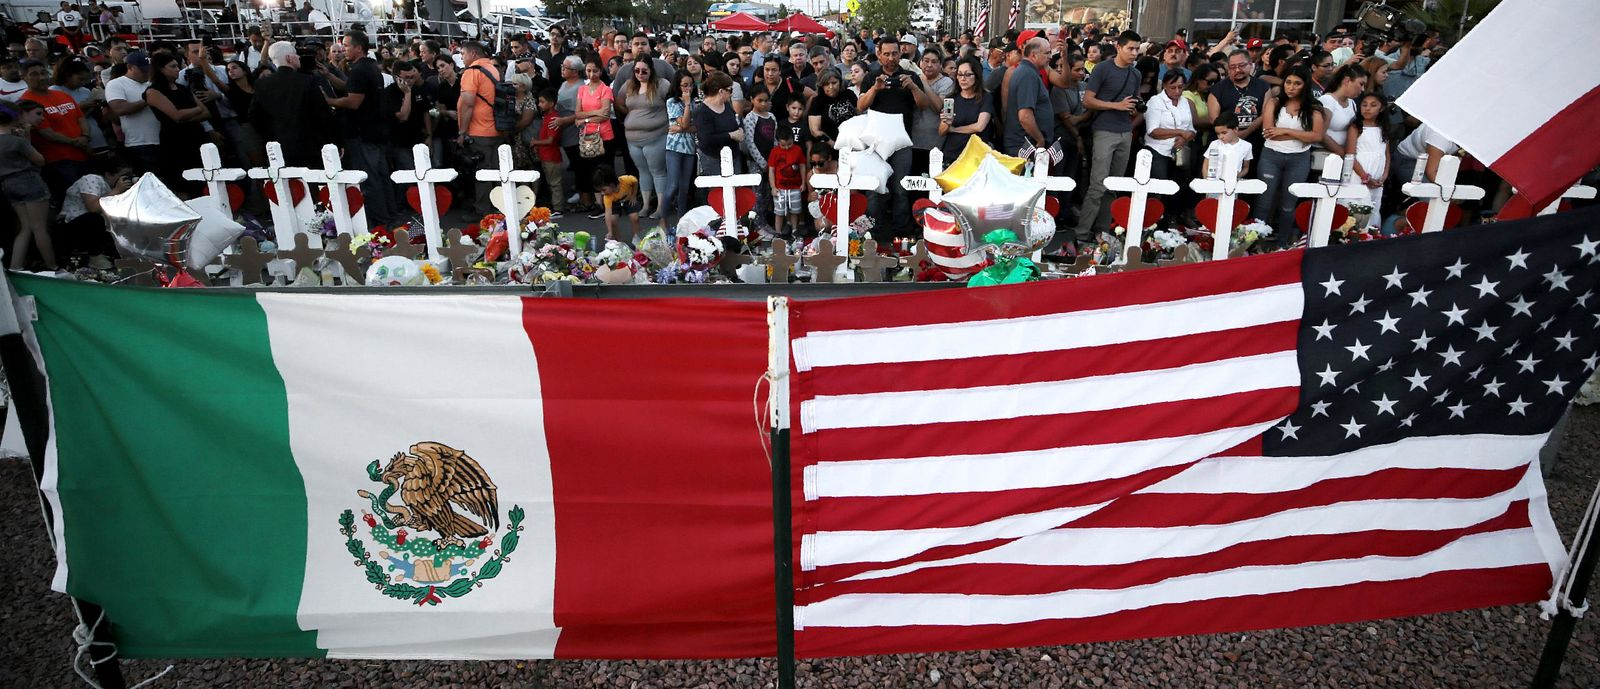 People show up in masses Monday, Aug. 5, 2019, to pay their respects to those who lost their lives in Saturday's attack in El Paso, Texas. (Mark Lambie/The El Paso Times via AP)